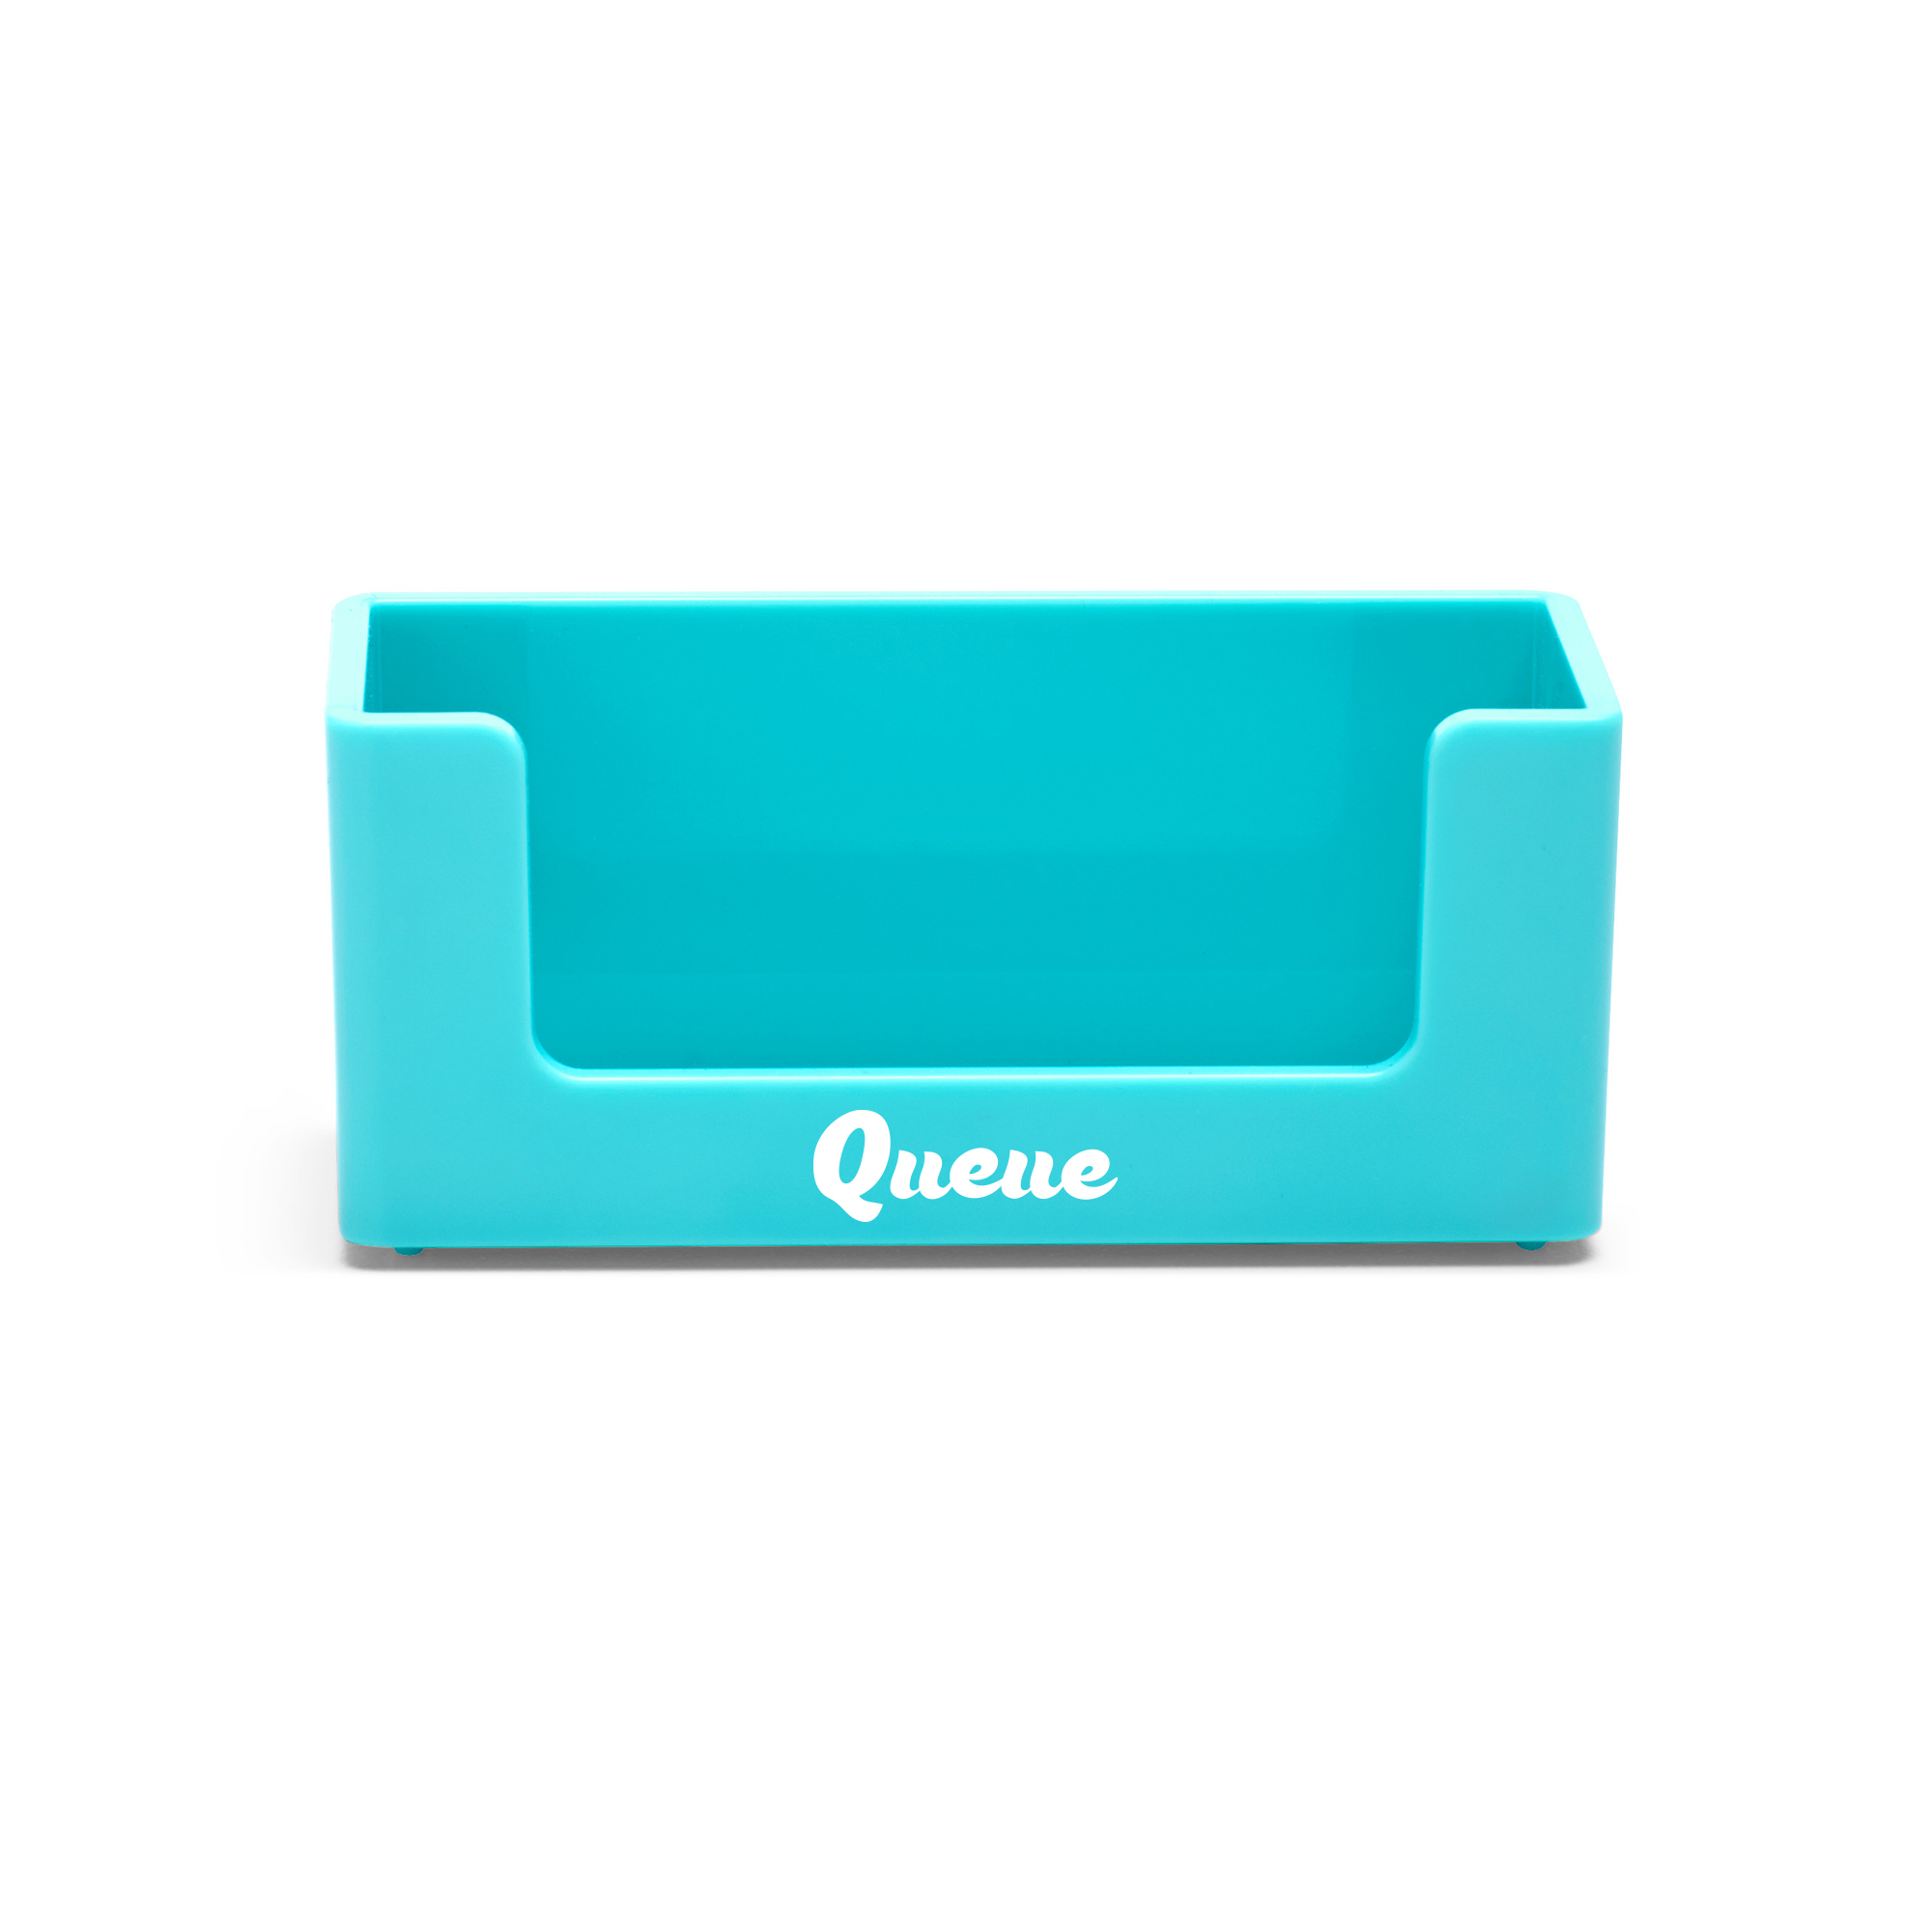 Custom business card holders desk accessories organization poppin custom aqua business card holderaquahi res loading zoom colourmoves